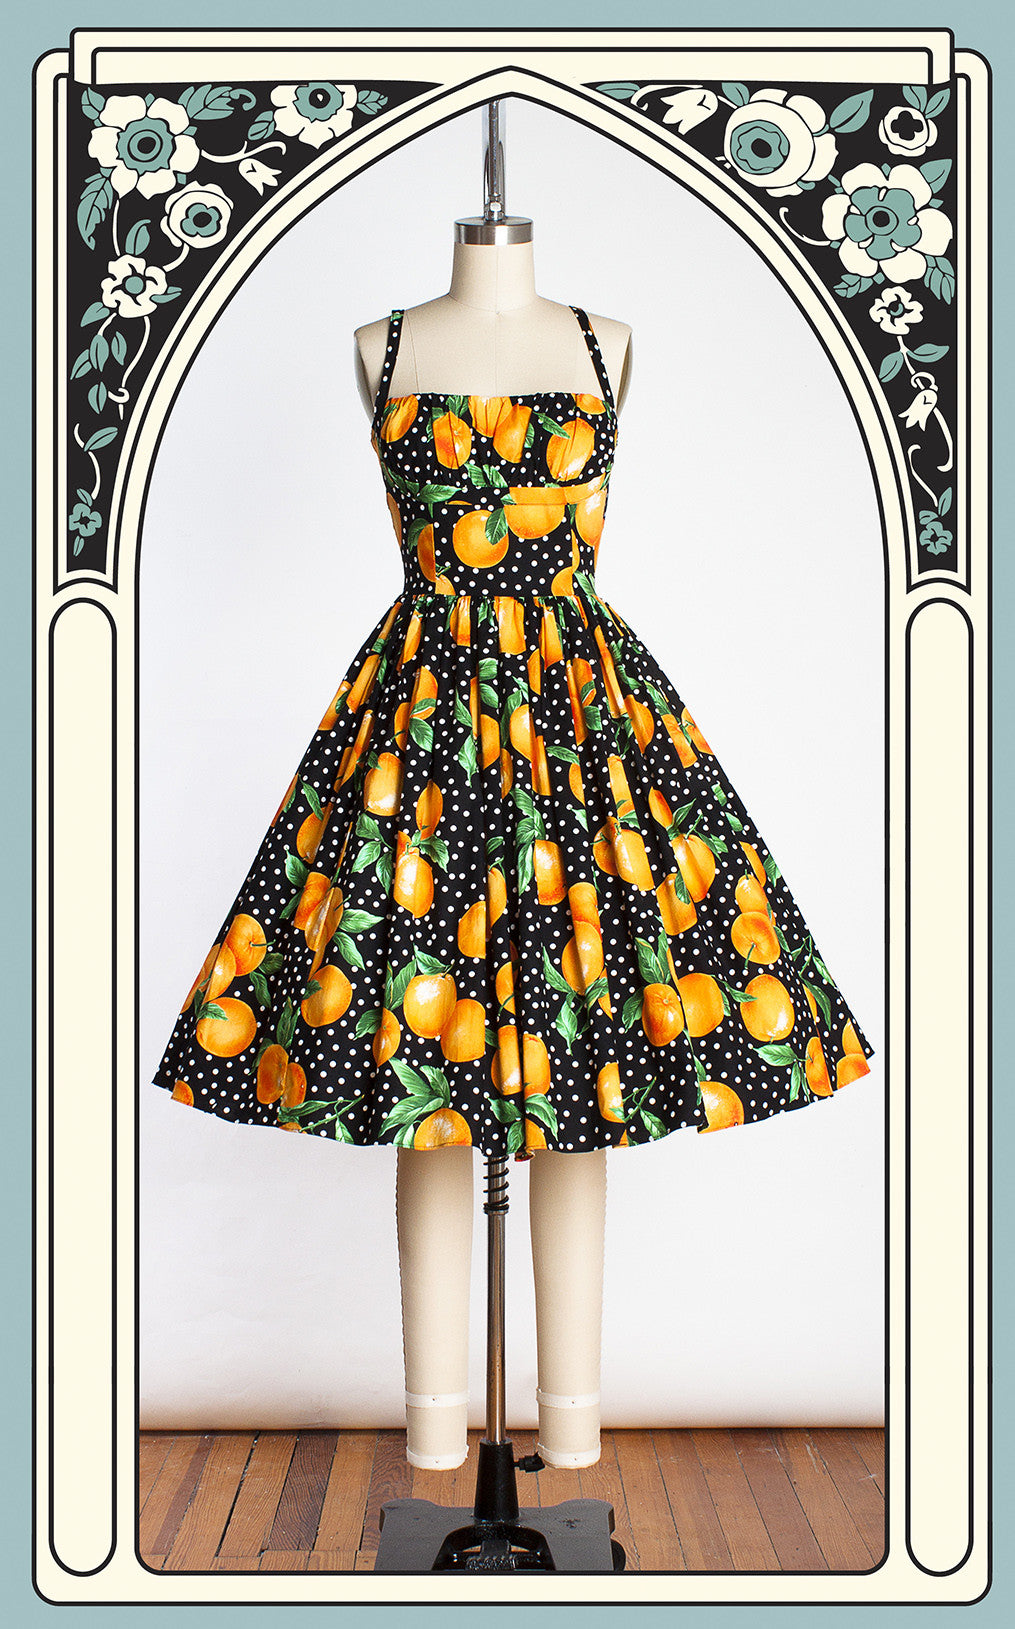 Bernie Dexter Paris Dress in Juicy Oranges